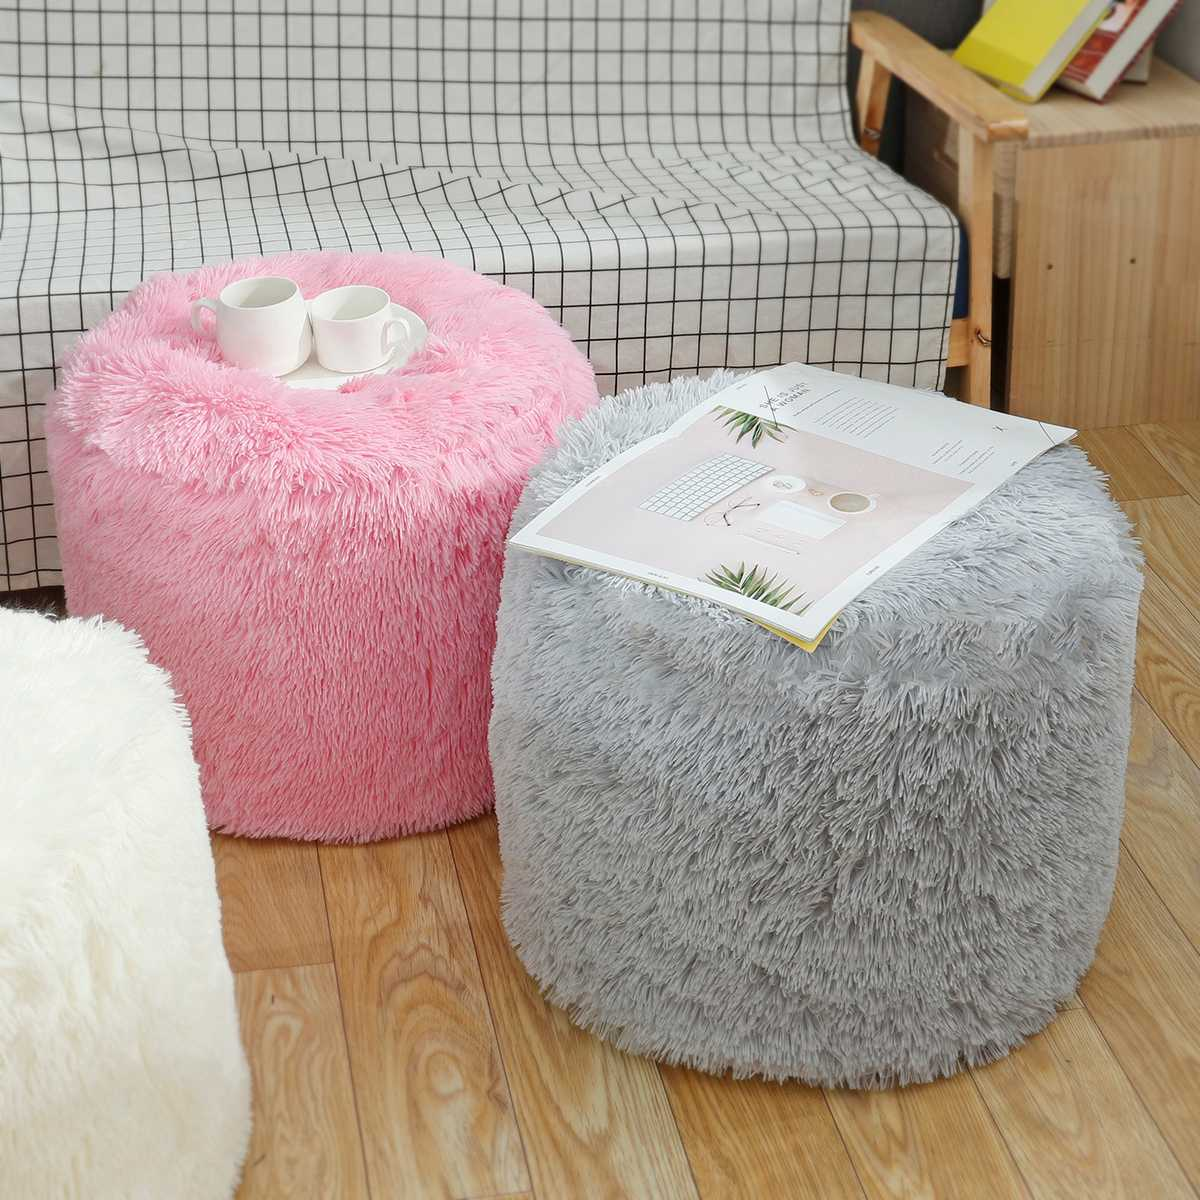 Home School Children Stool Baby Seats Soft Cloth Cover Air Inflatable Baby Seats Bed Sofa Chair With Inner Bladder Round Stool